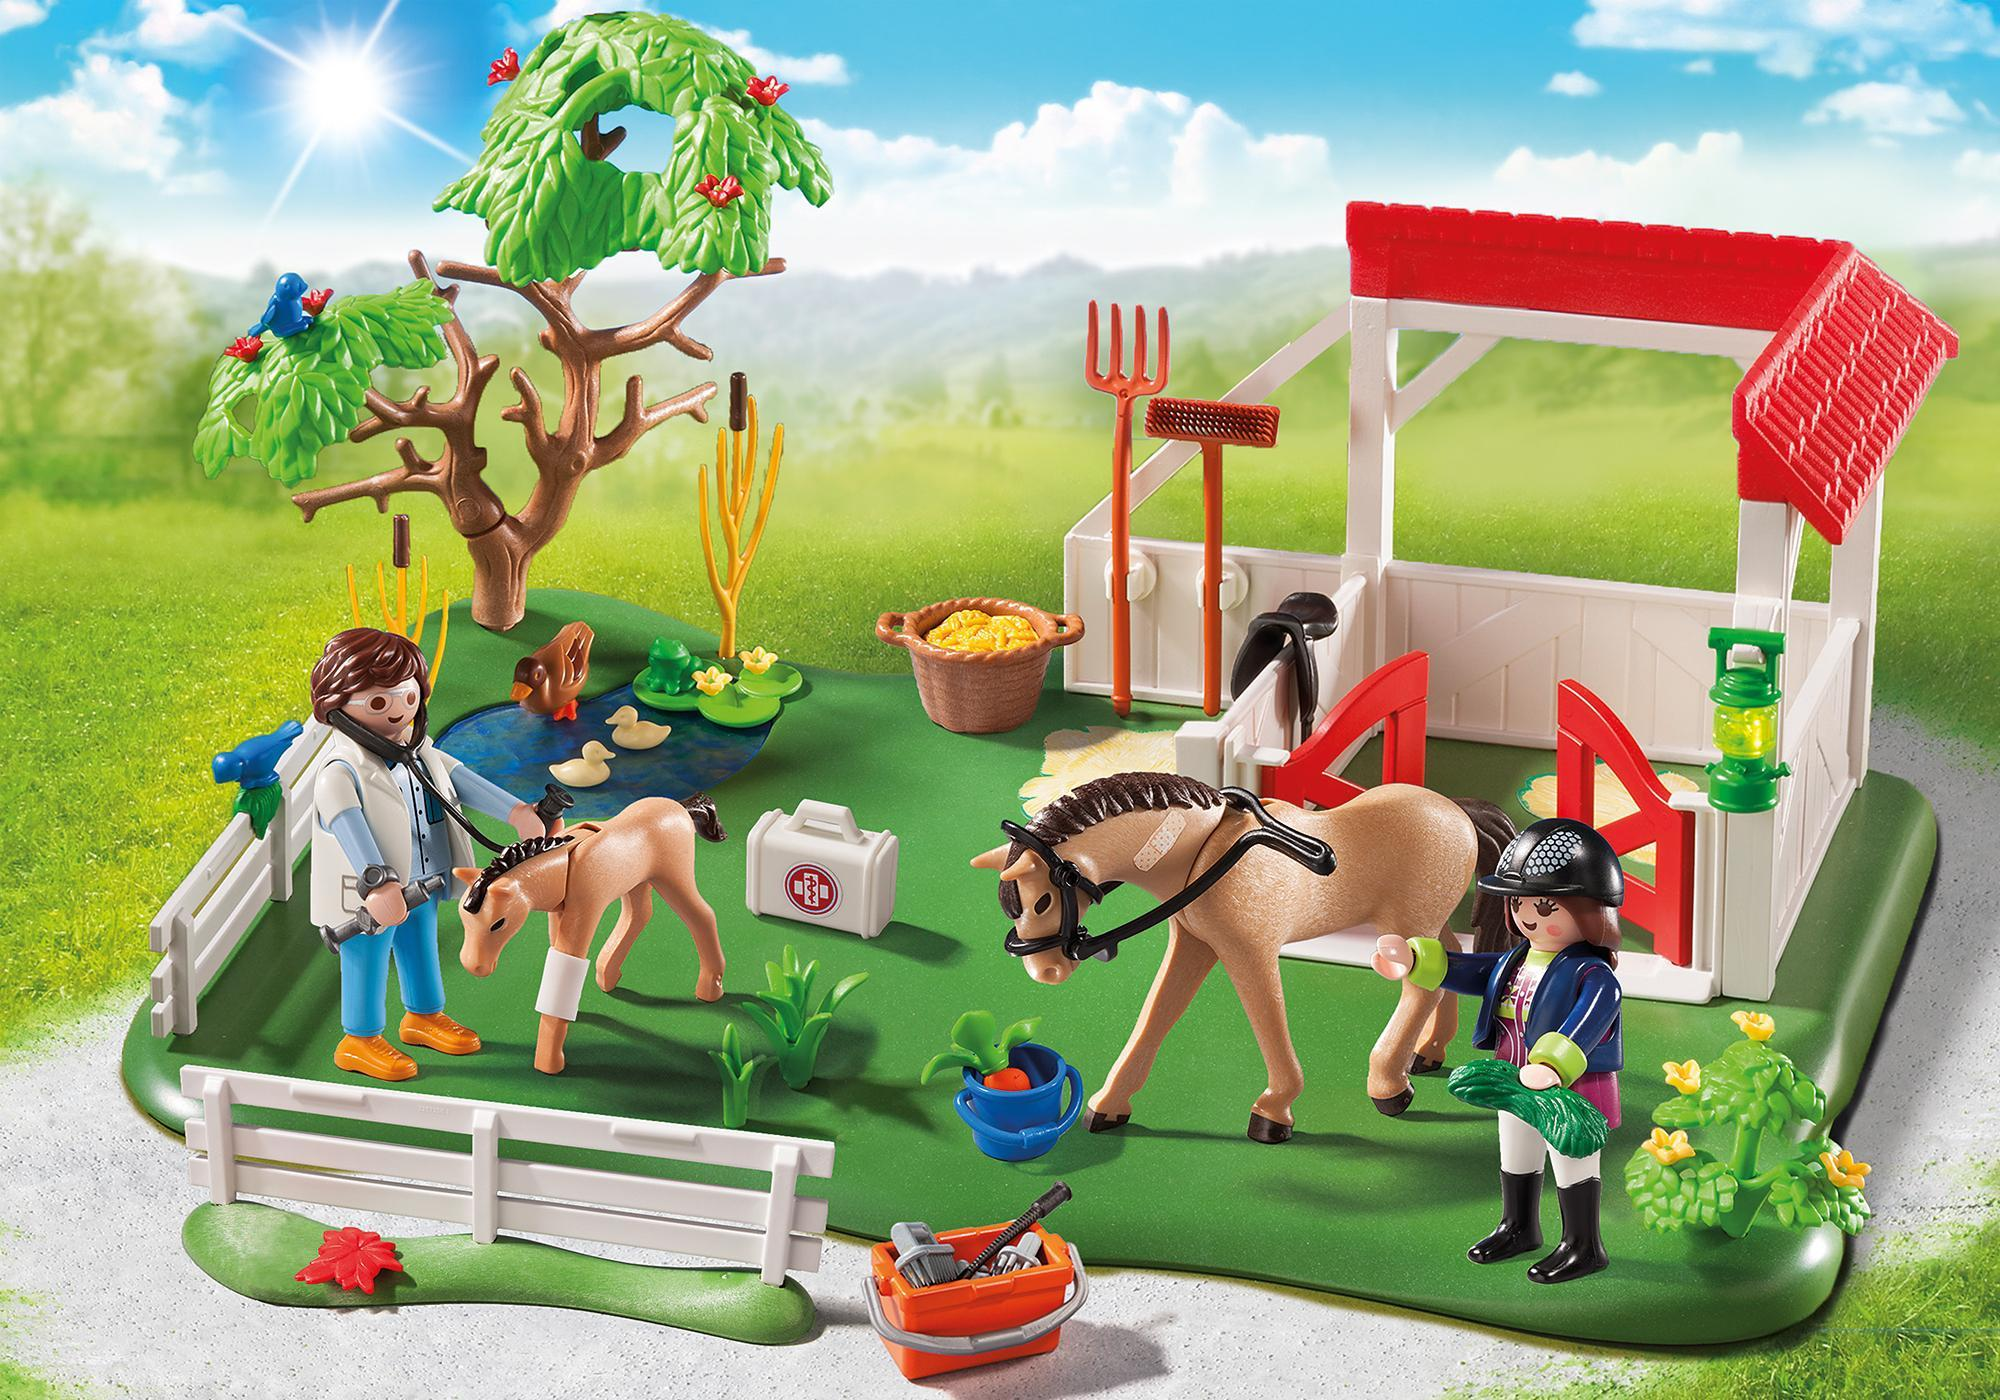 http://media.playmobil.com/i/playmobil/6147_product_detail/Superset Prado de Caballos